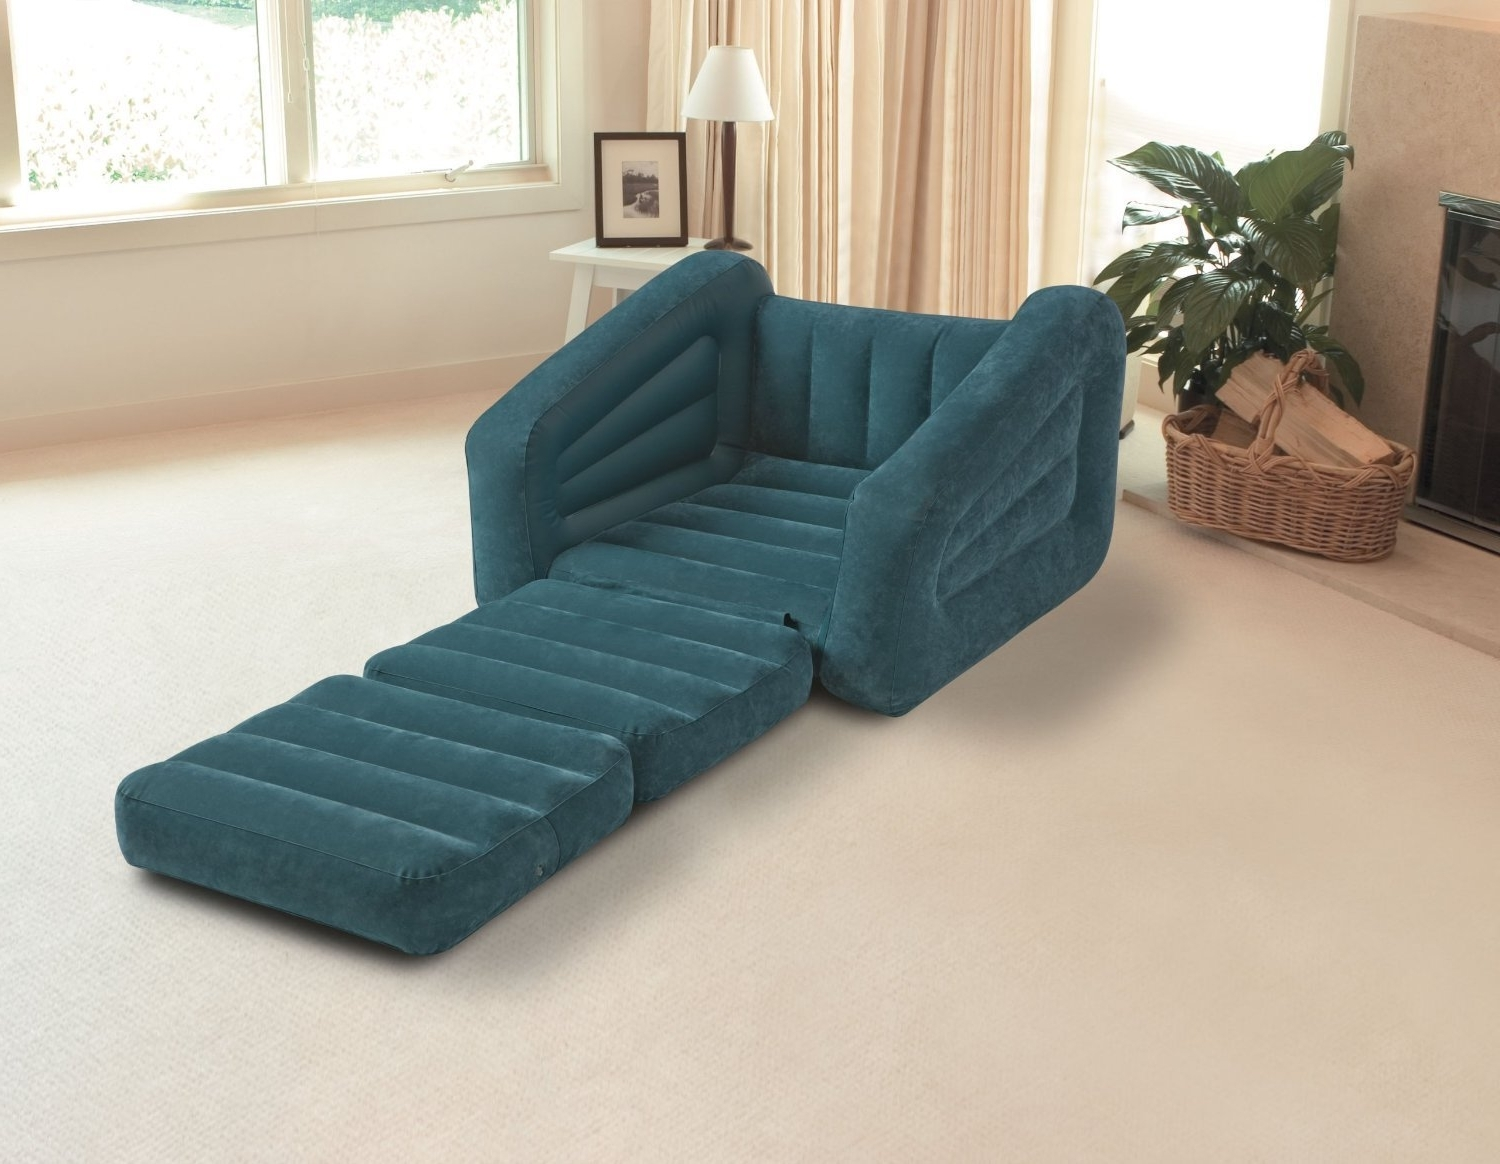 Pull Out Sofa Chairs With Regard To Fashionable Top 10 Best Comfy Sleeper Chairs Reviews 2018 2019 On Flipboard (View 15 of 15)